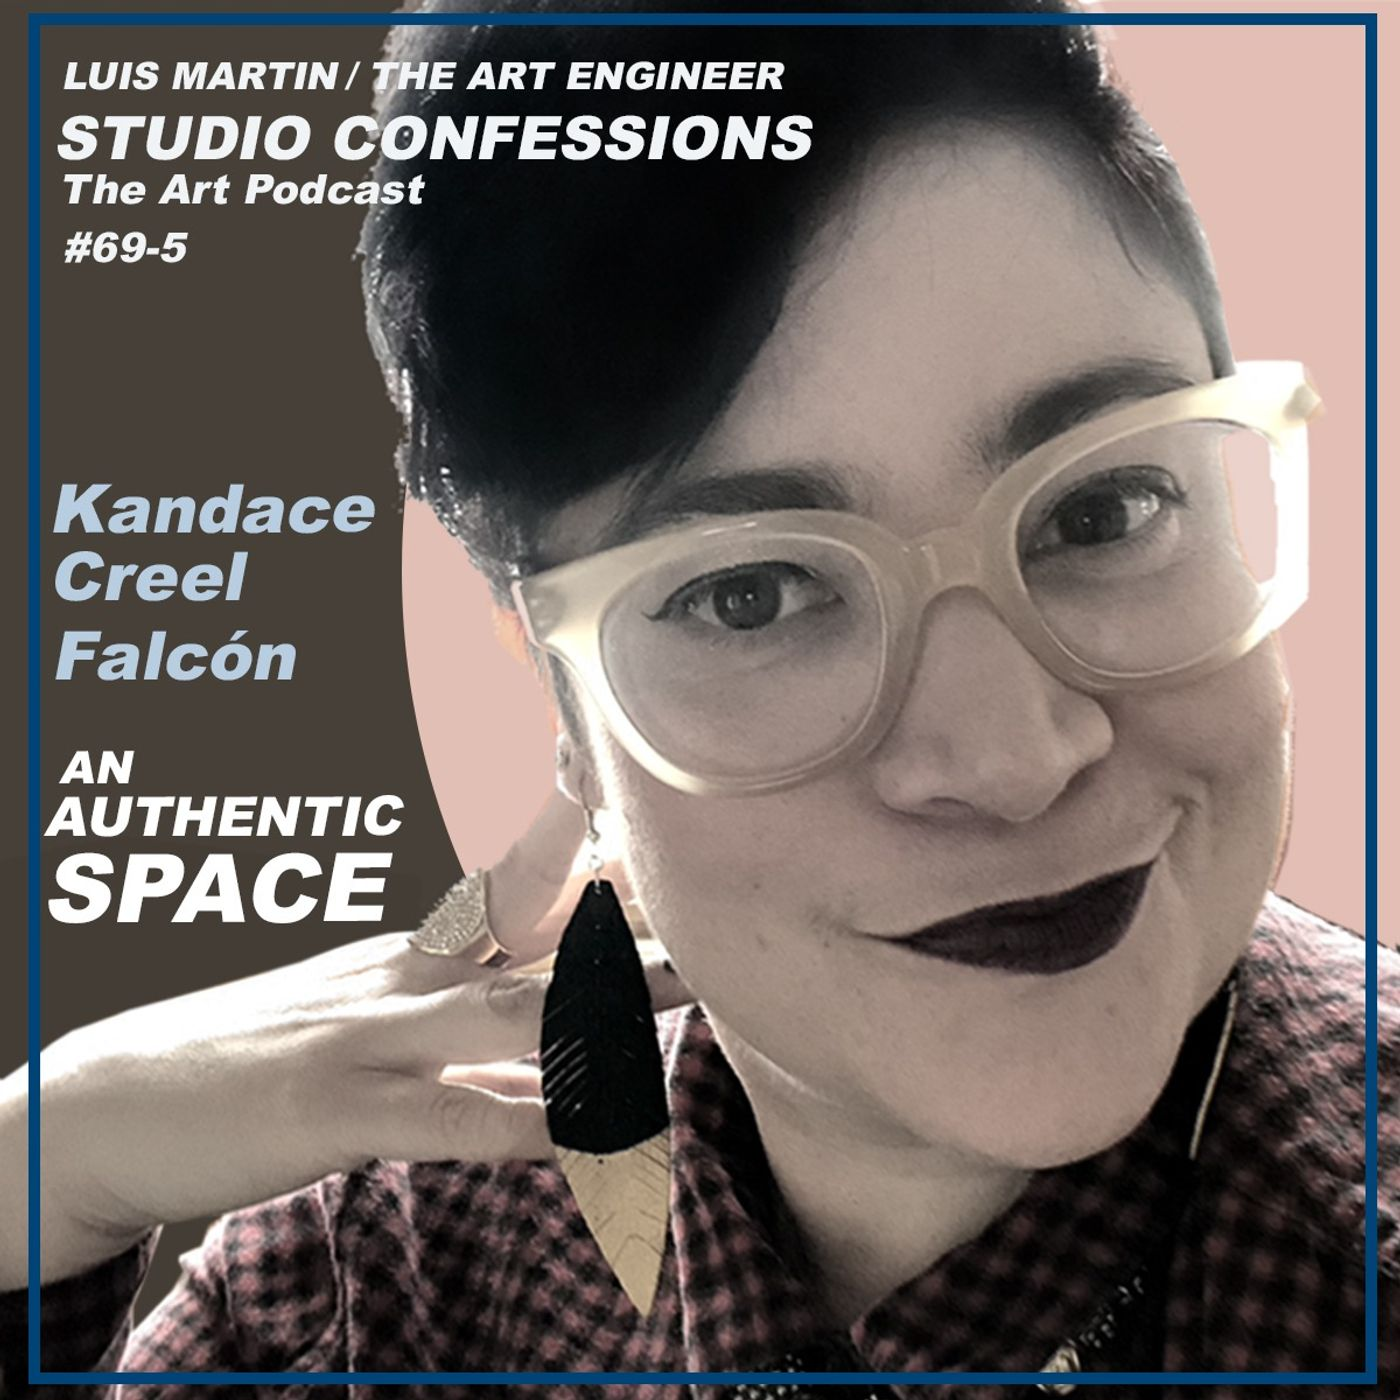 Kandace Creel Falcón: An Authentic Space